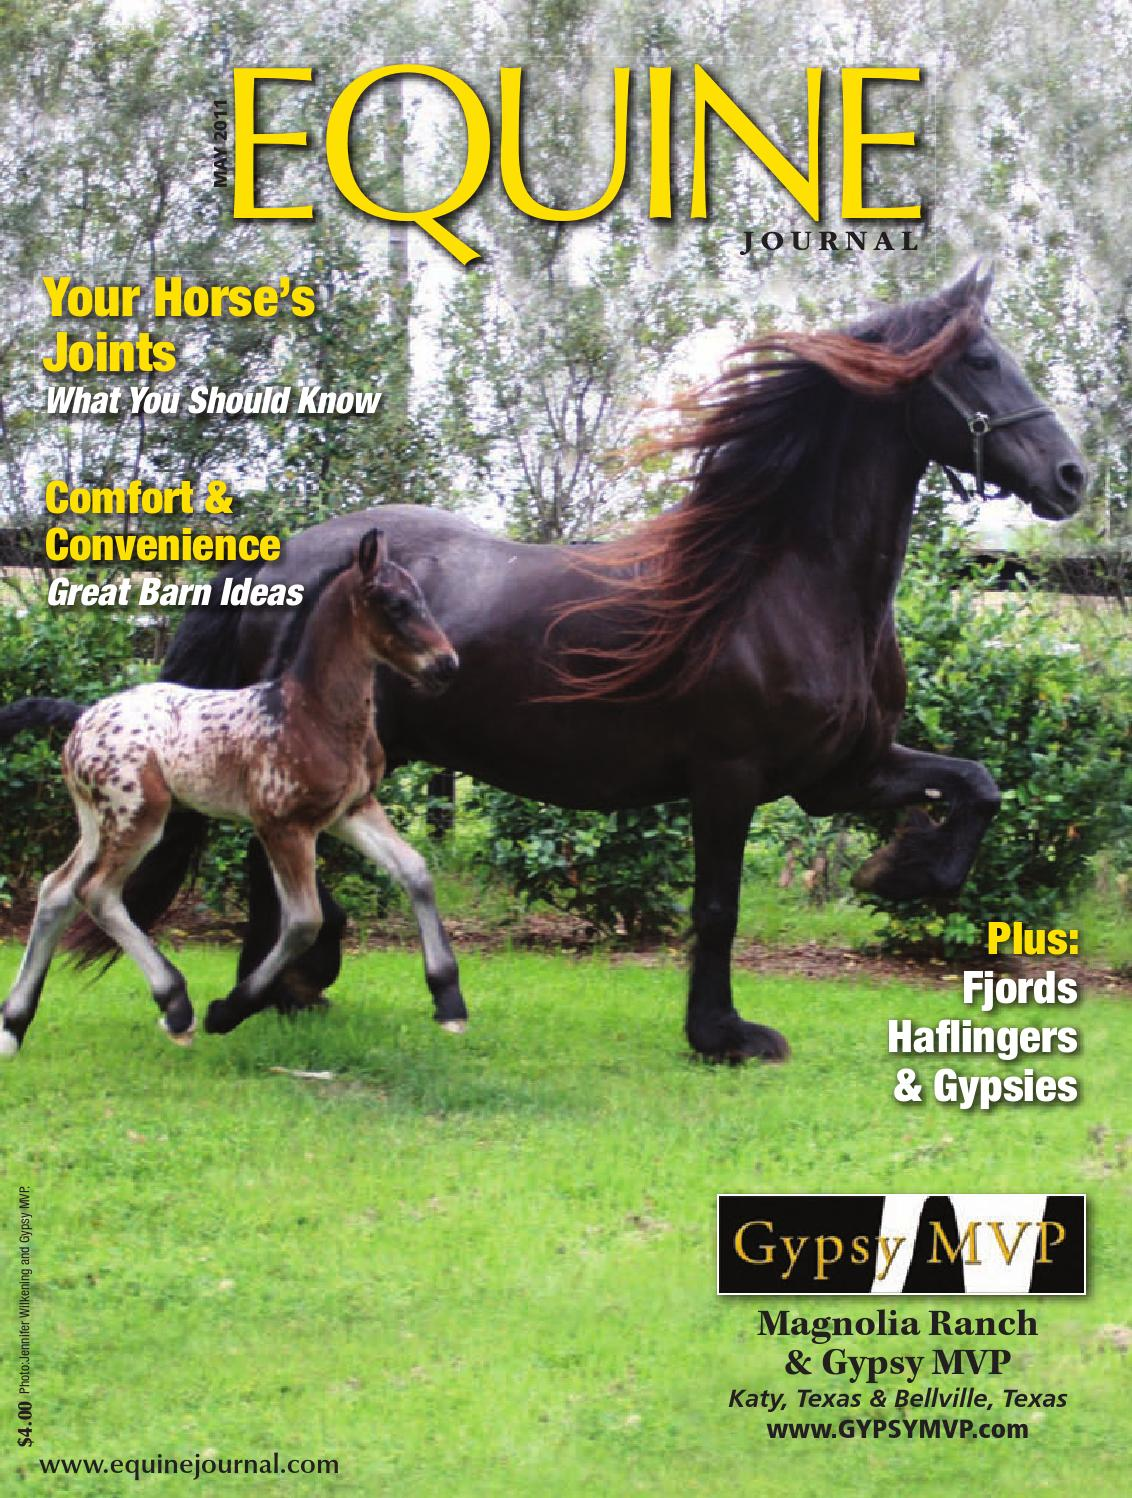 d53f6d4c171 Equine Journal (May 2011) by Equine Journal - issuu